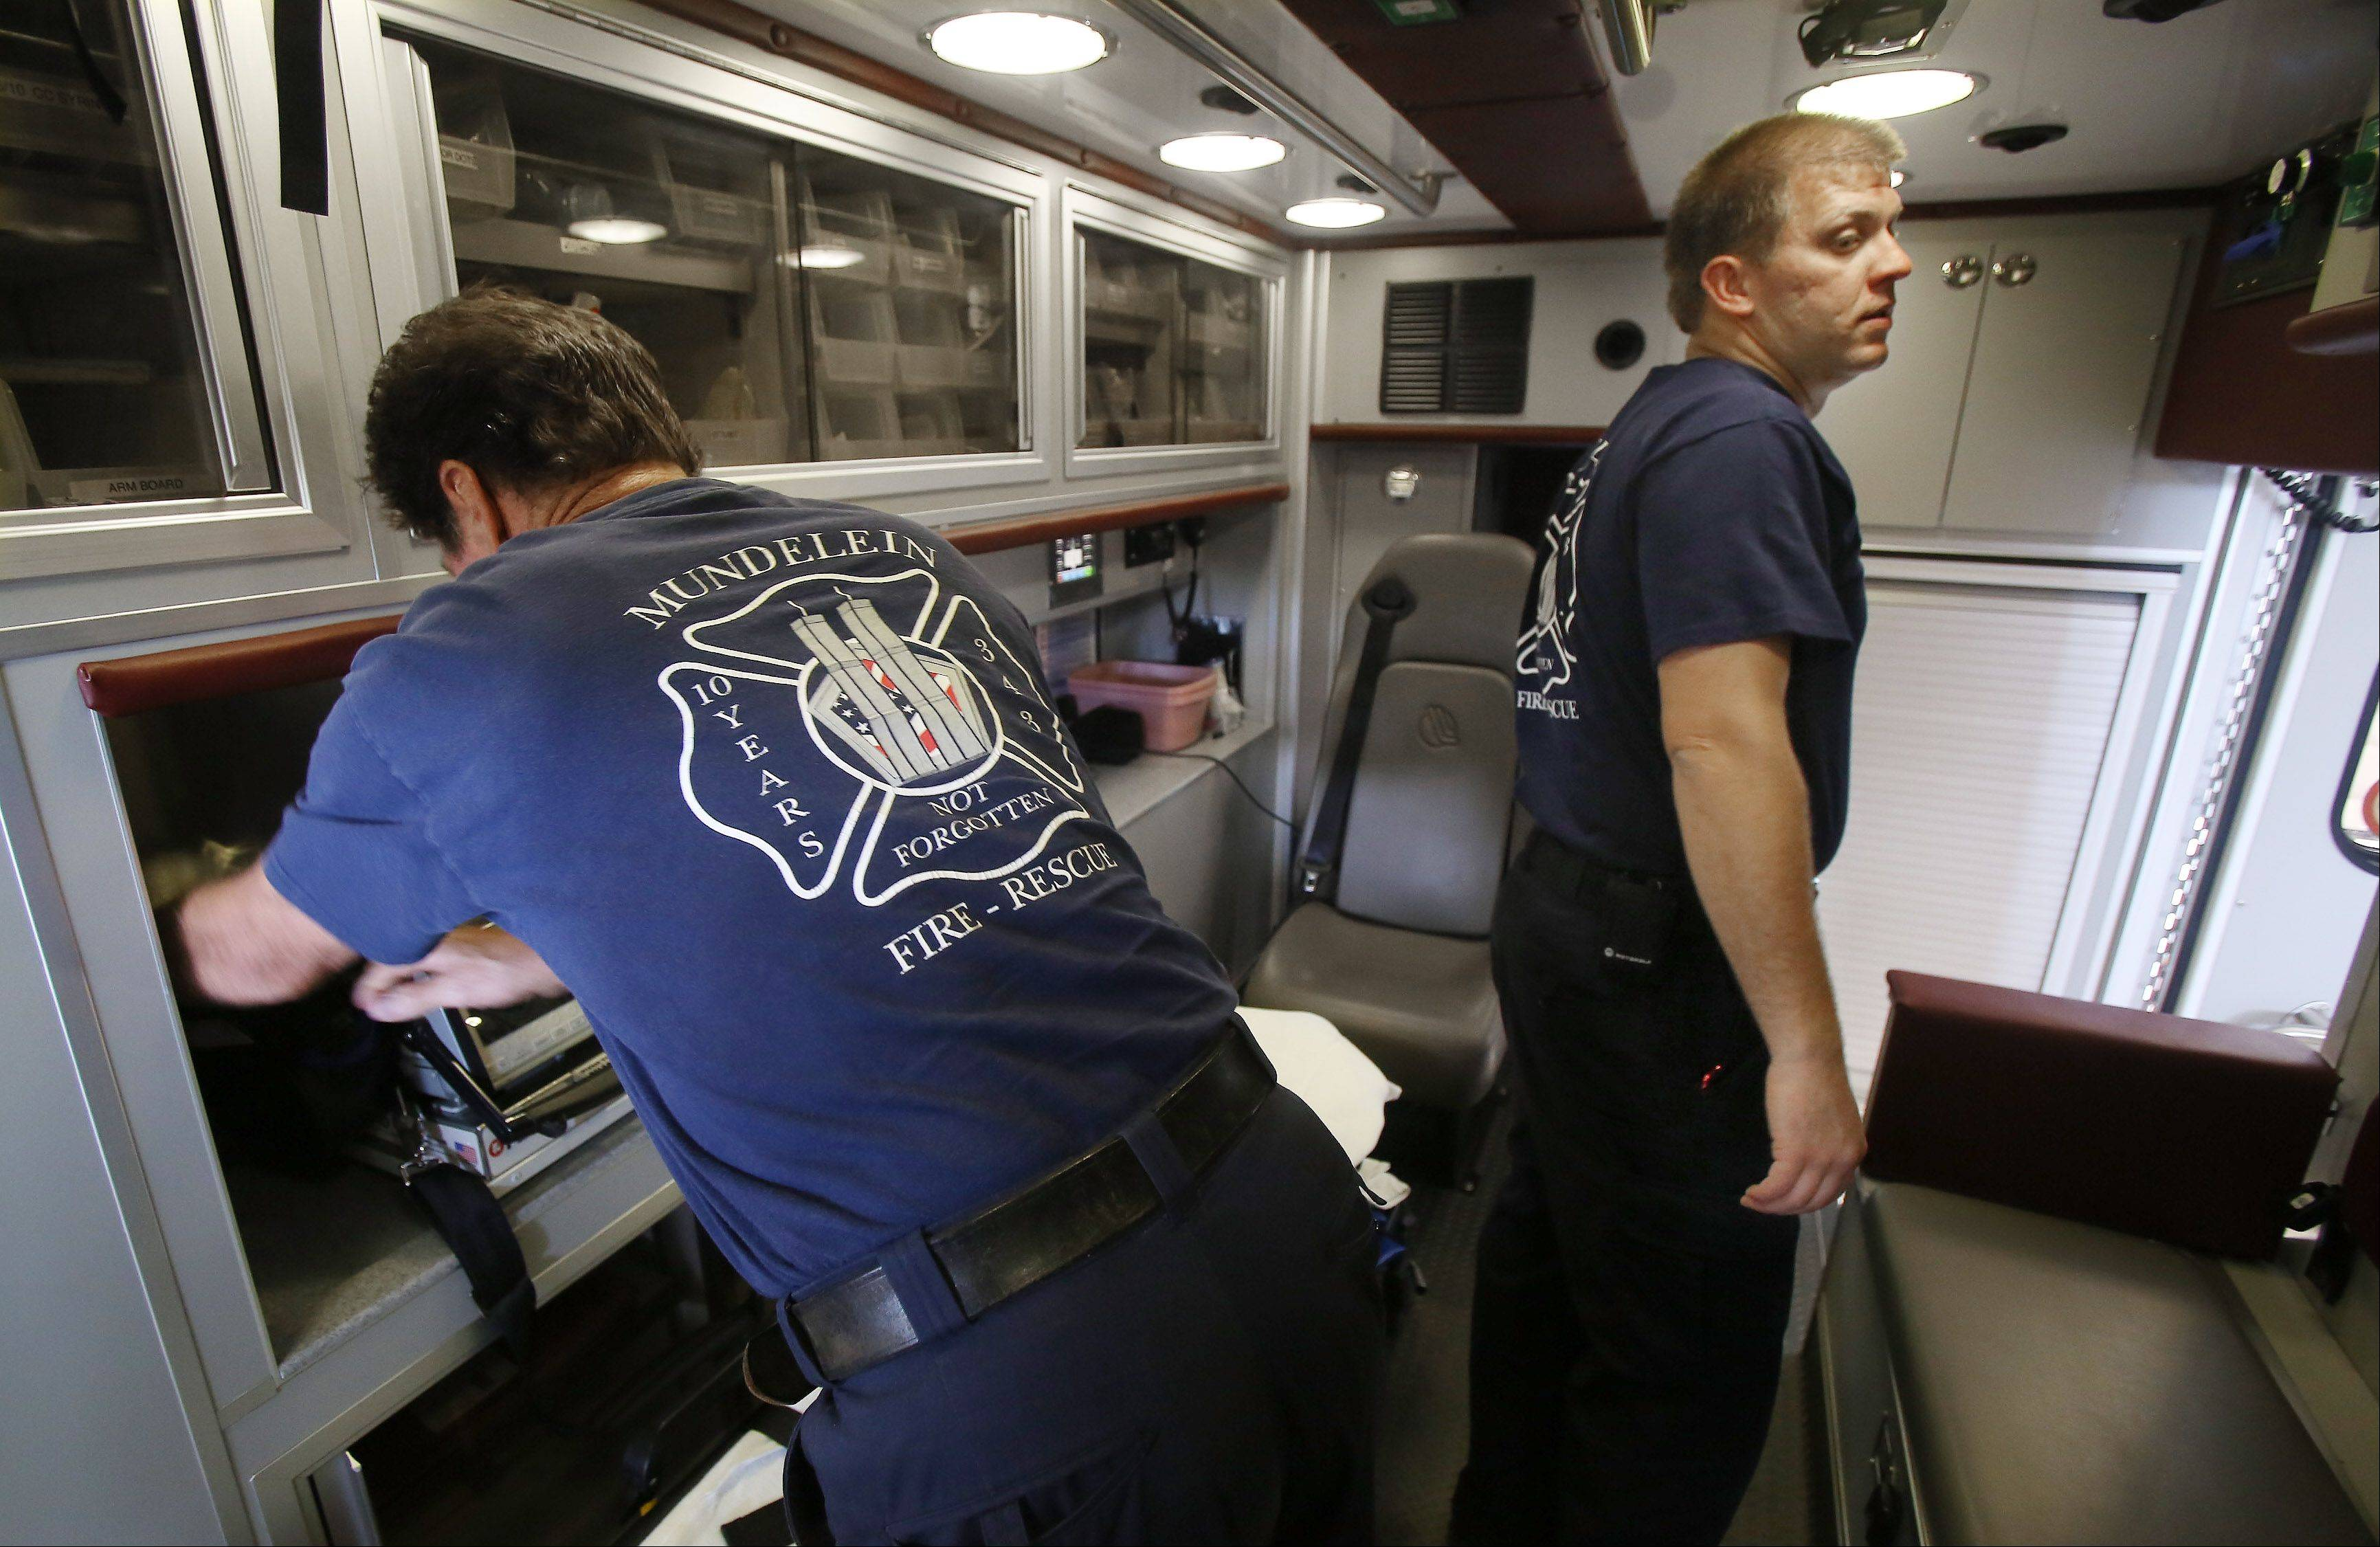 Firefighter/paramedics Ed Anderson, left, and Dan Buhrmester work on the ambulance as firefighters with the Mundelein Fire Department wear FDNY T-shirts in remembrance of Sept. 11 Wednesday at the Midlothian fire station.